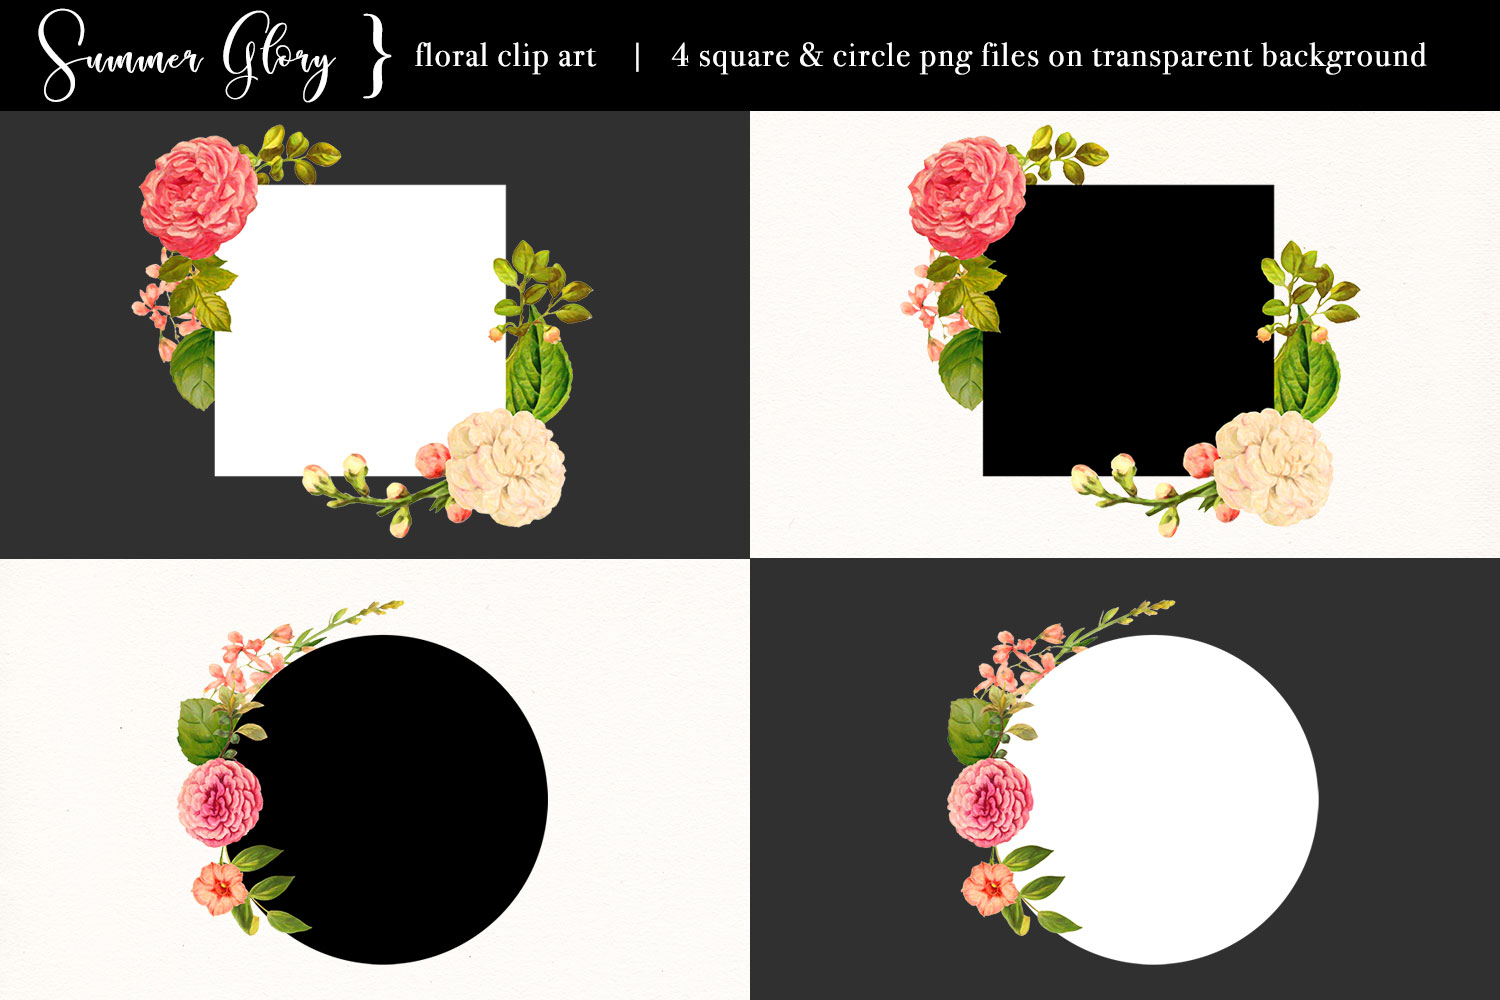 Floral Clip Art - Summer Glory example image 3